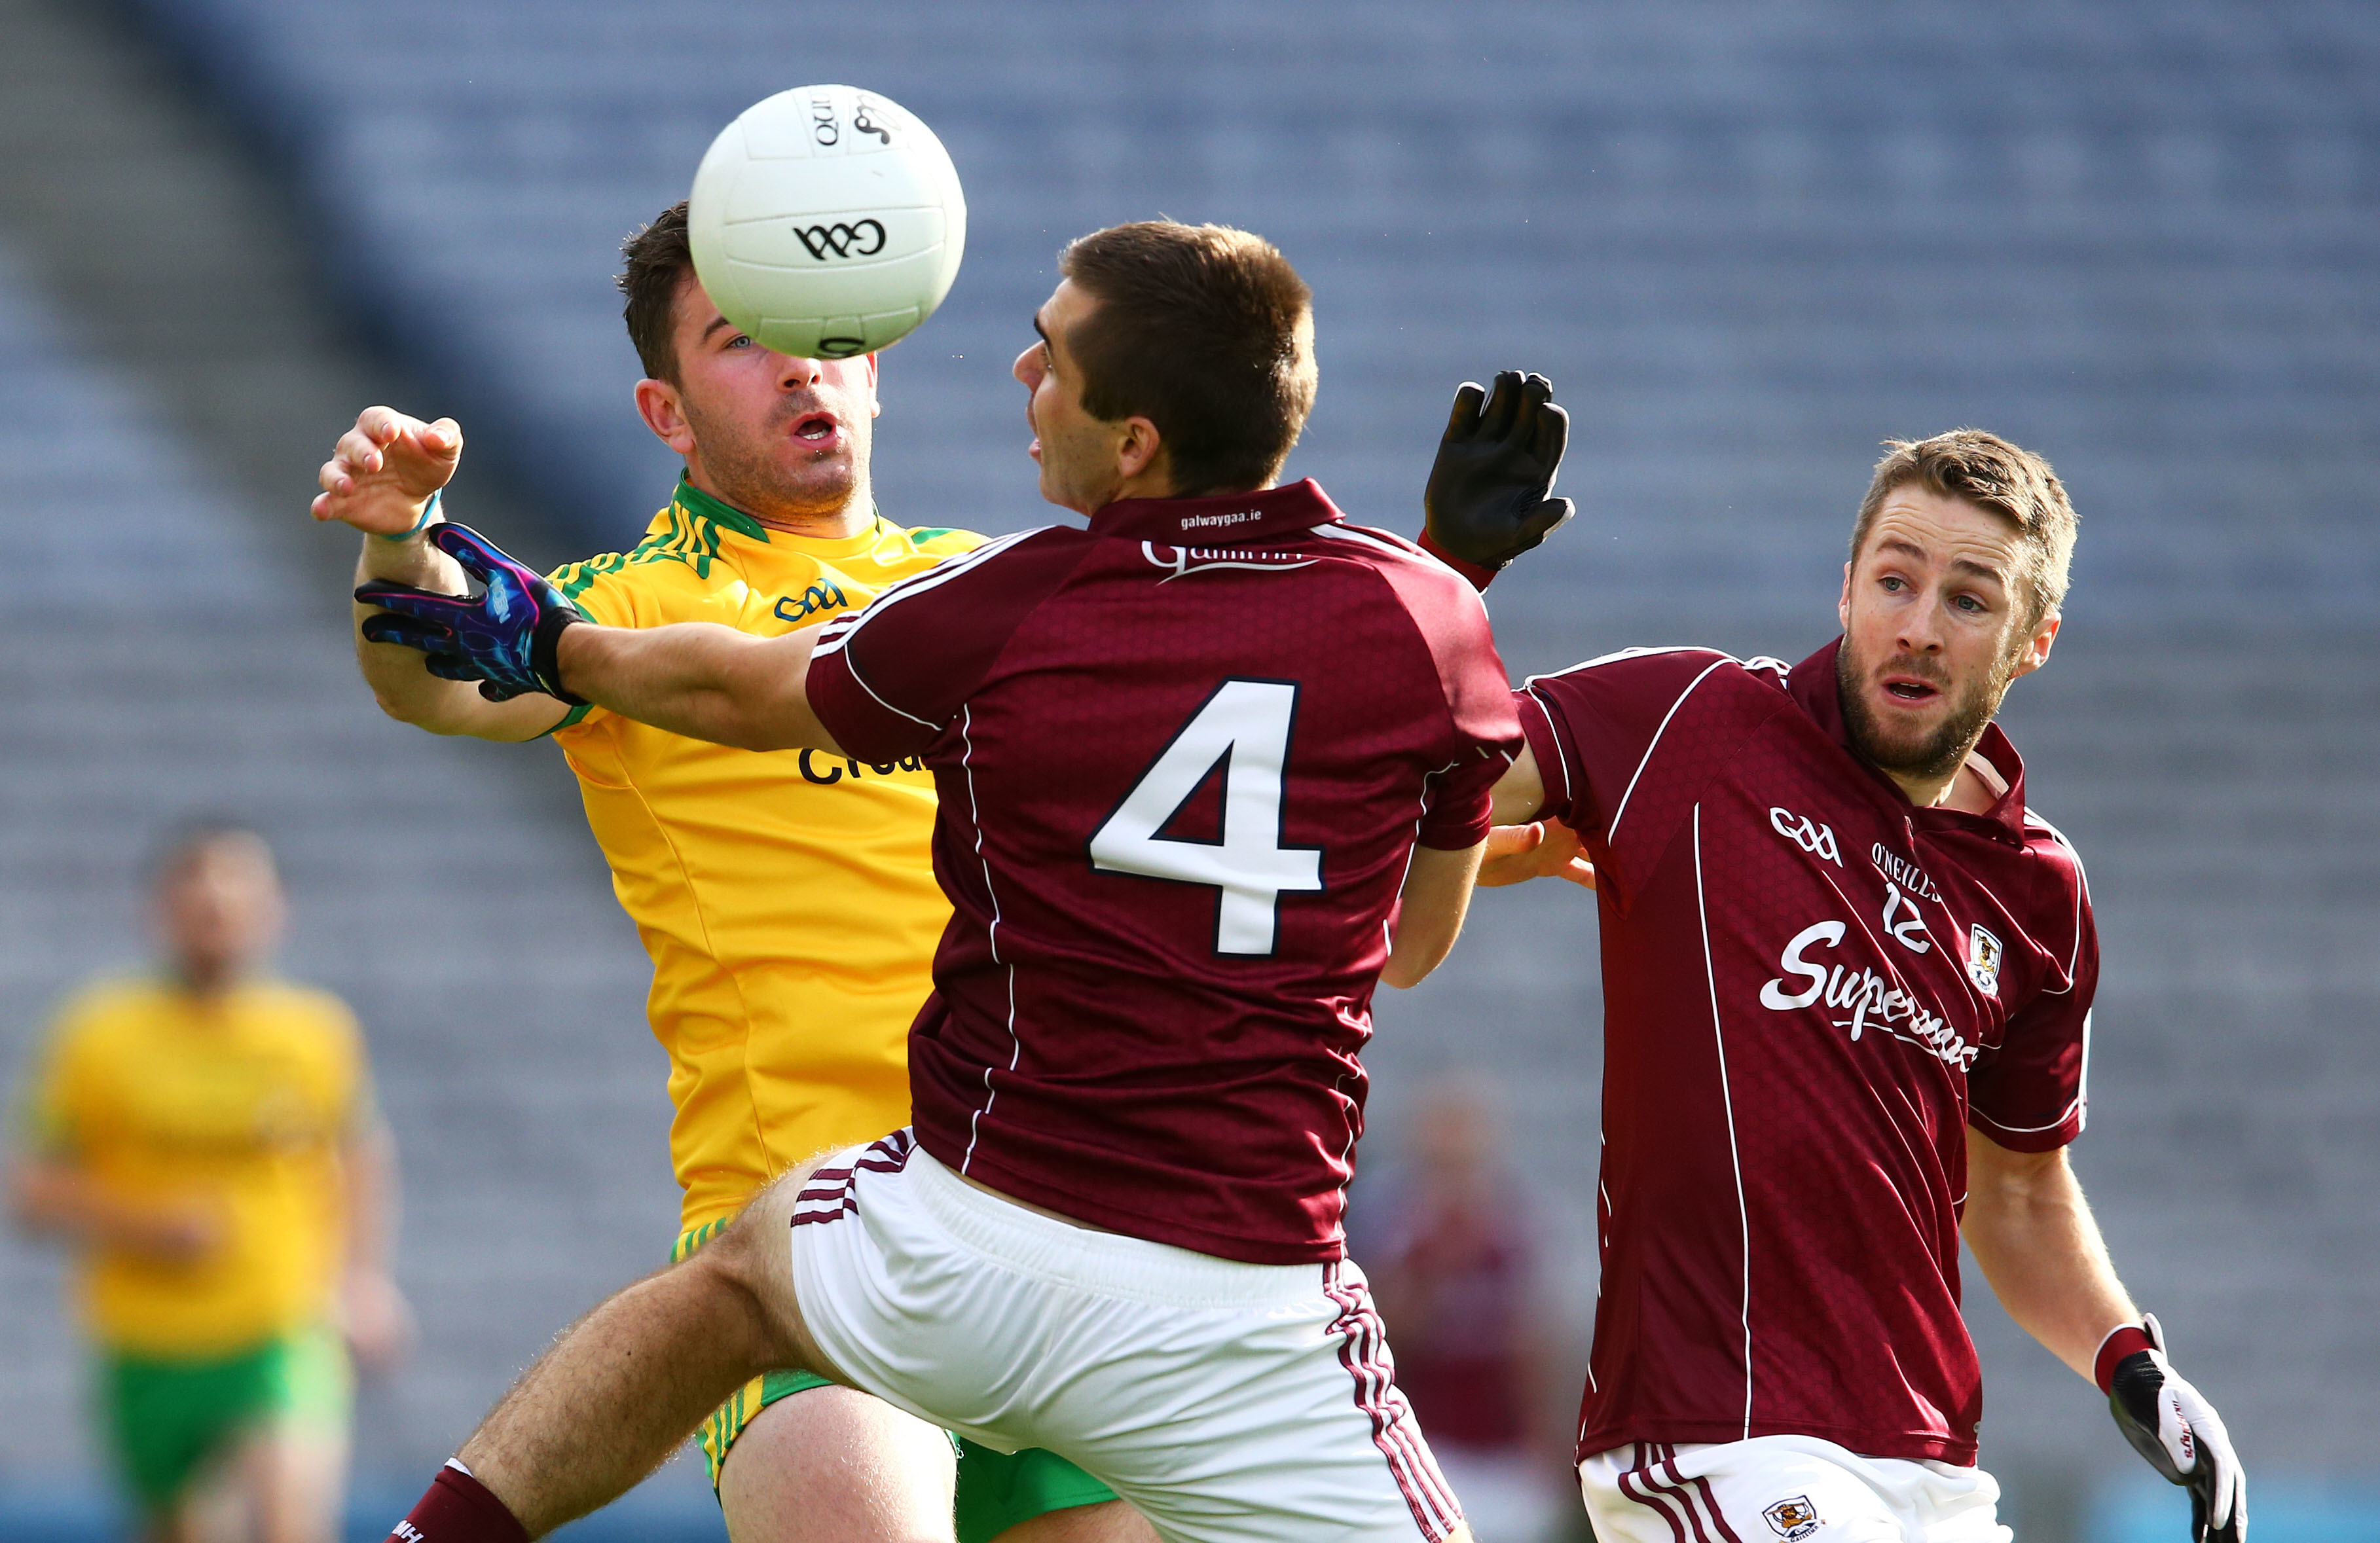 Patrick McBrearty under pressure from Cathal Sweeney and Micheal Lundy.